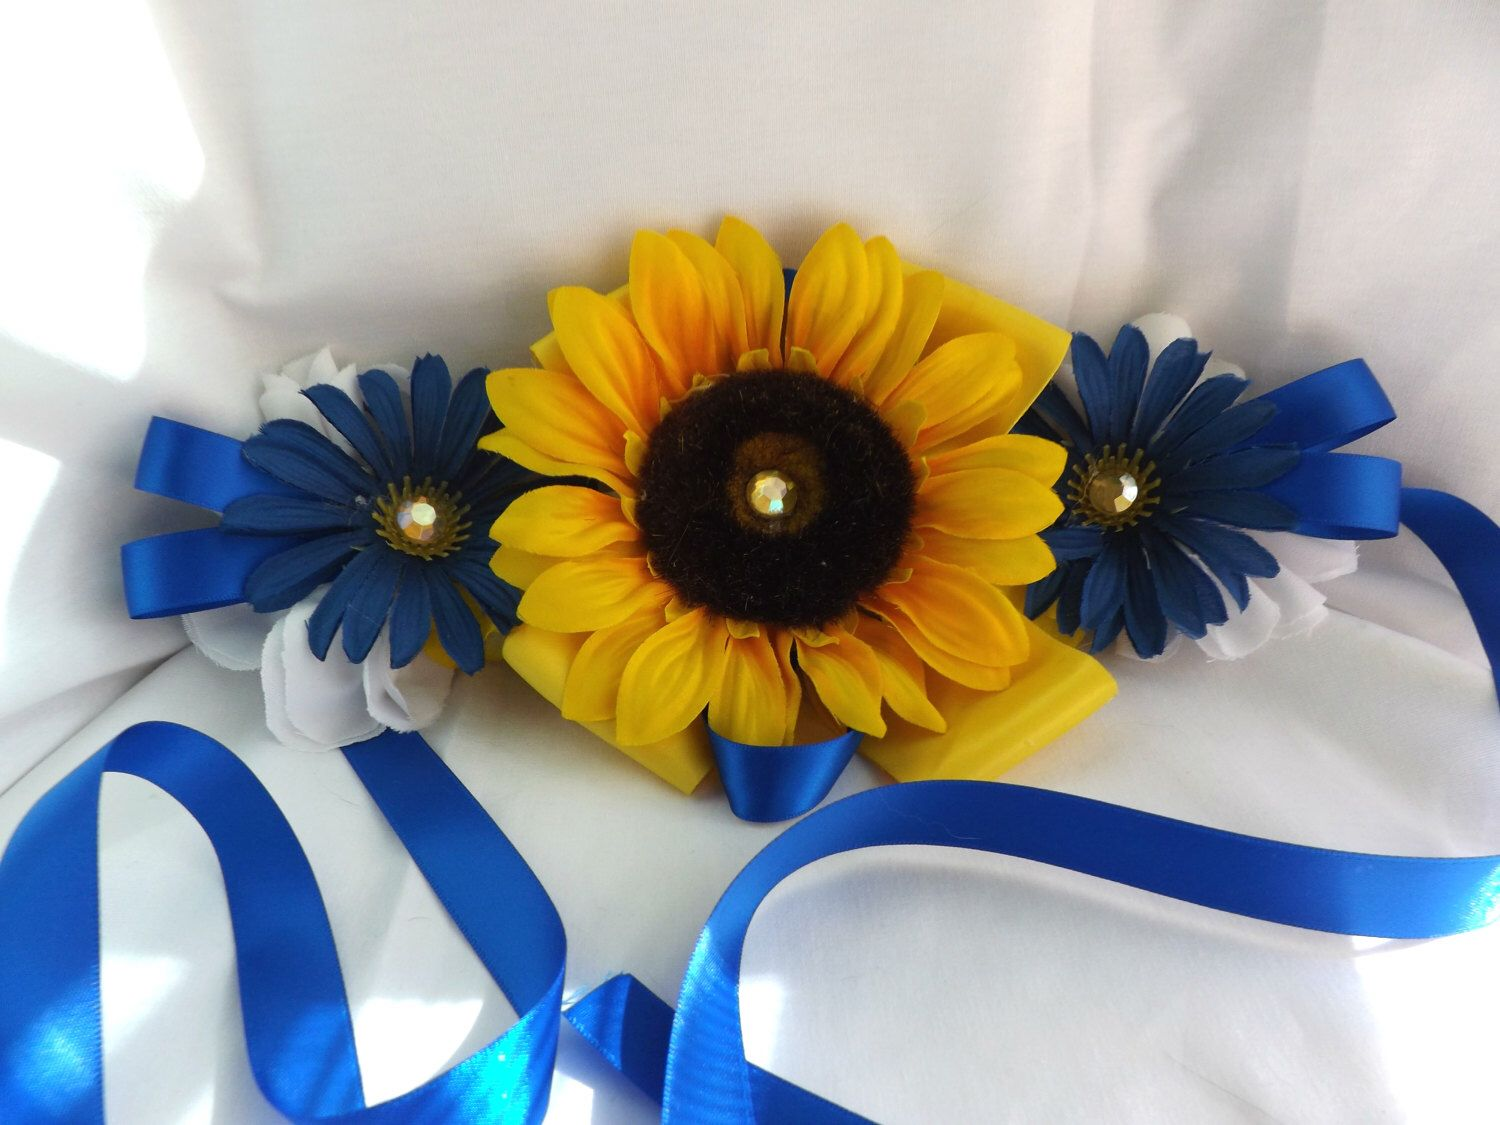 Blue Sunflower Maternity Sash Corsage, Baby Shower, Belt, Belly Sash,  Maternity, Pregnancy, Blue, Yellow, Sunflower, Neutral, Boy, Girl